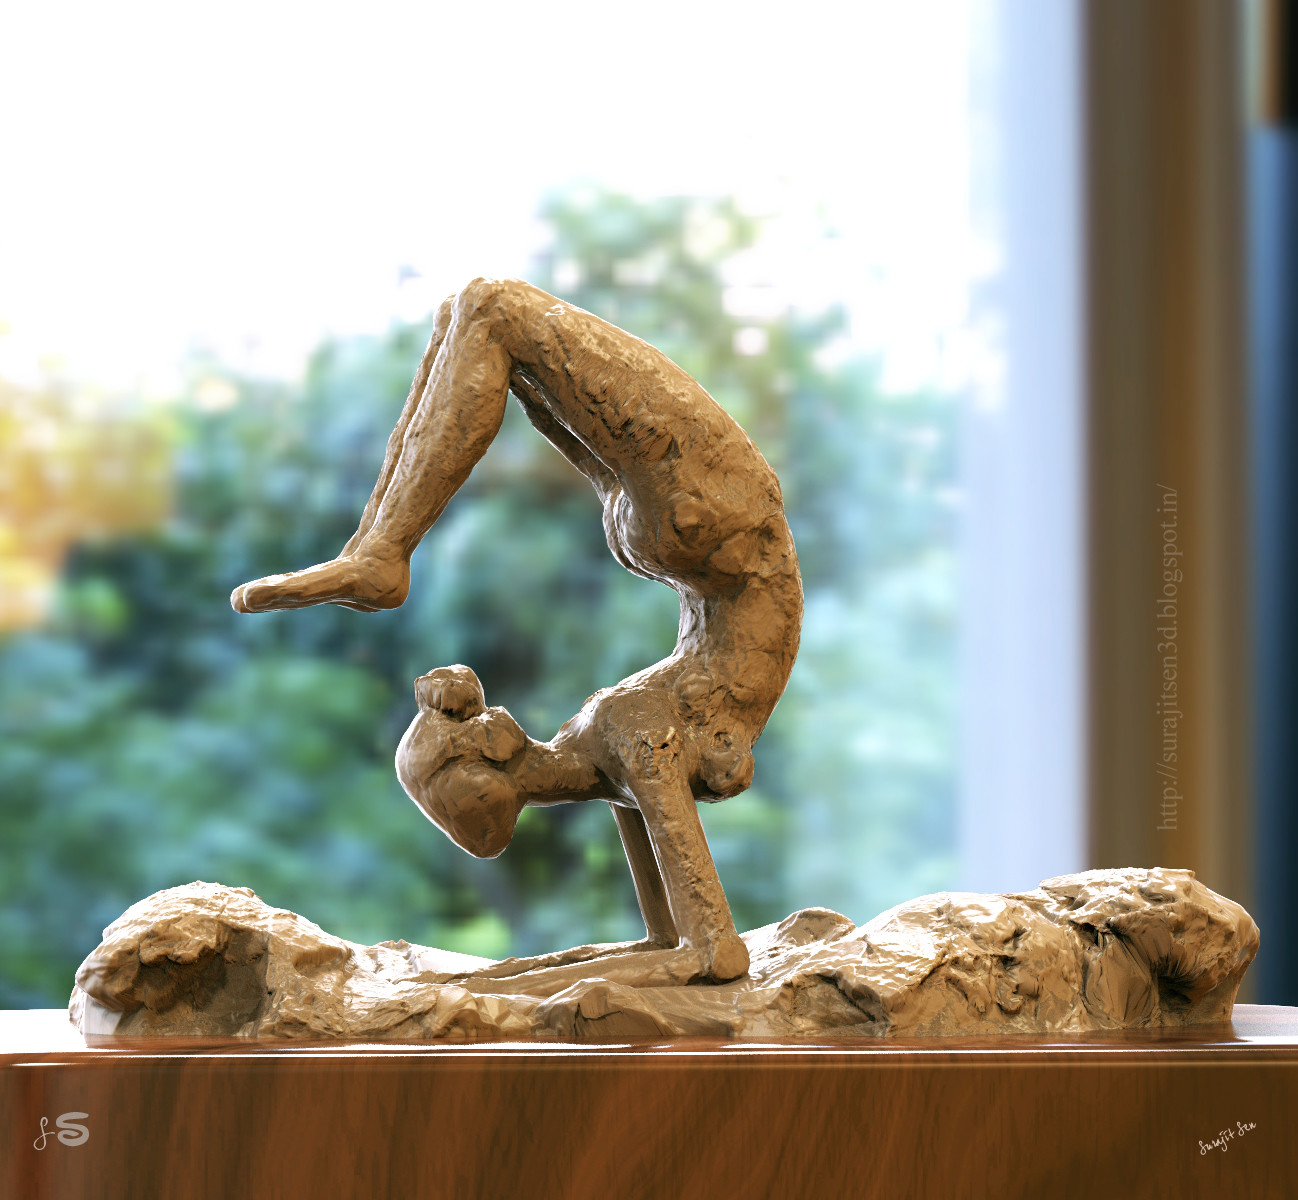 International Yoga Day 2018.  I created this rough sculpt for International Yoga day 2018. Let's celebrate this unique Day in an Artistic  way.